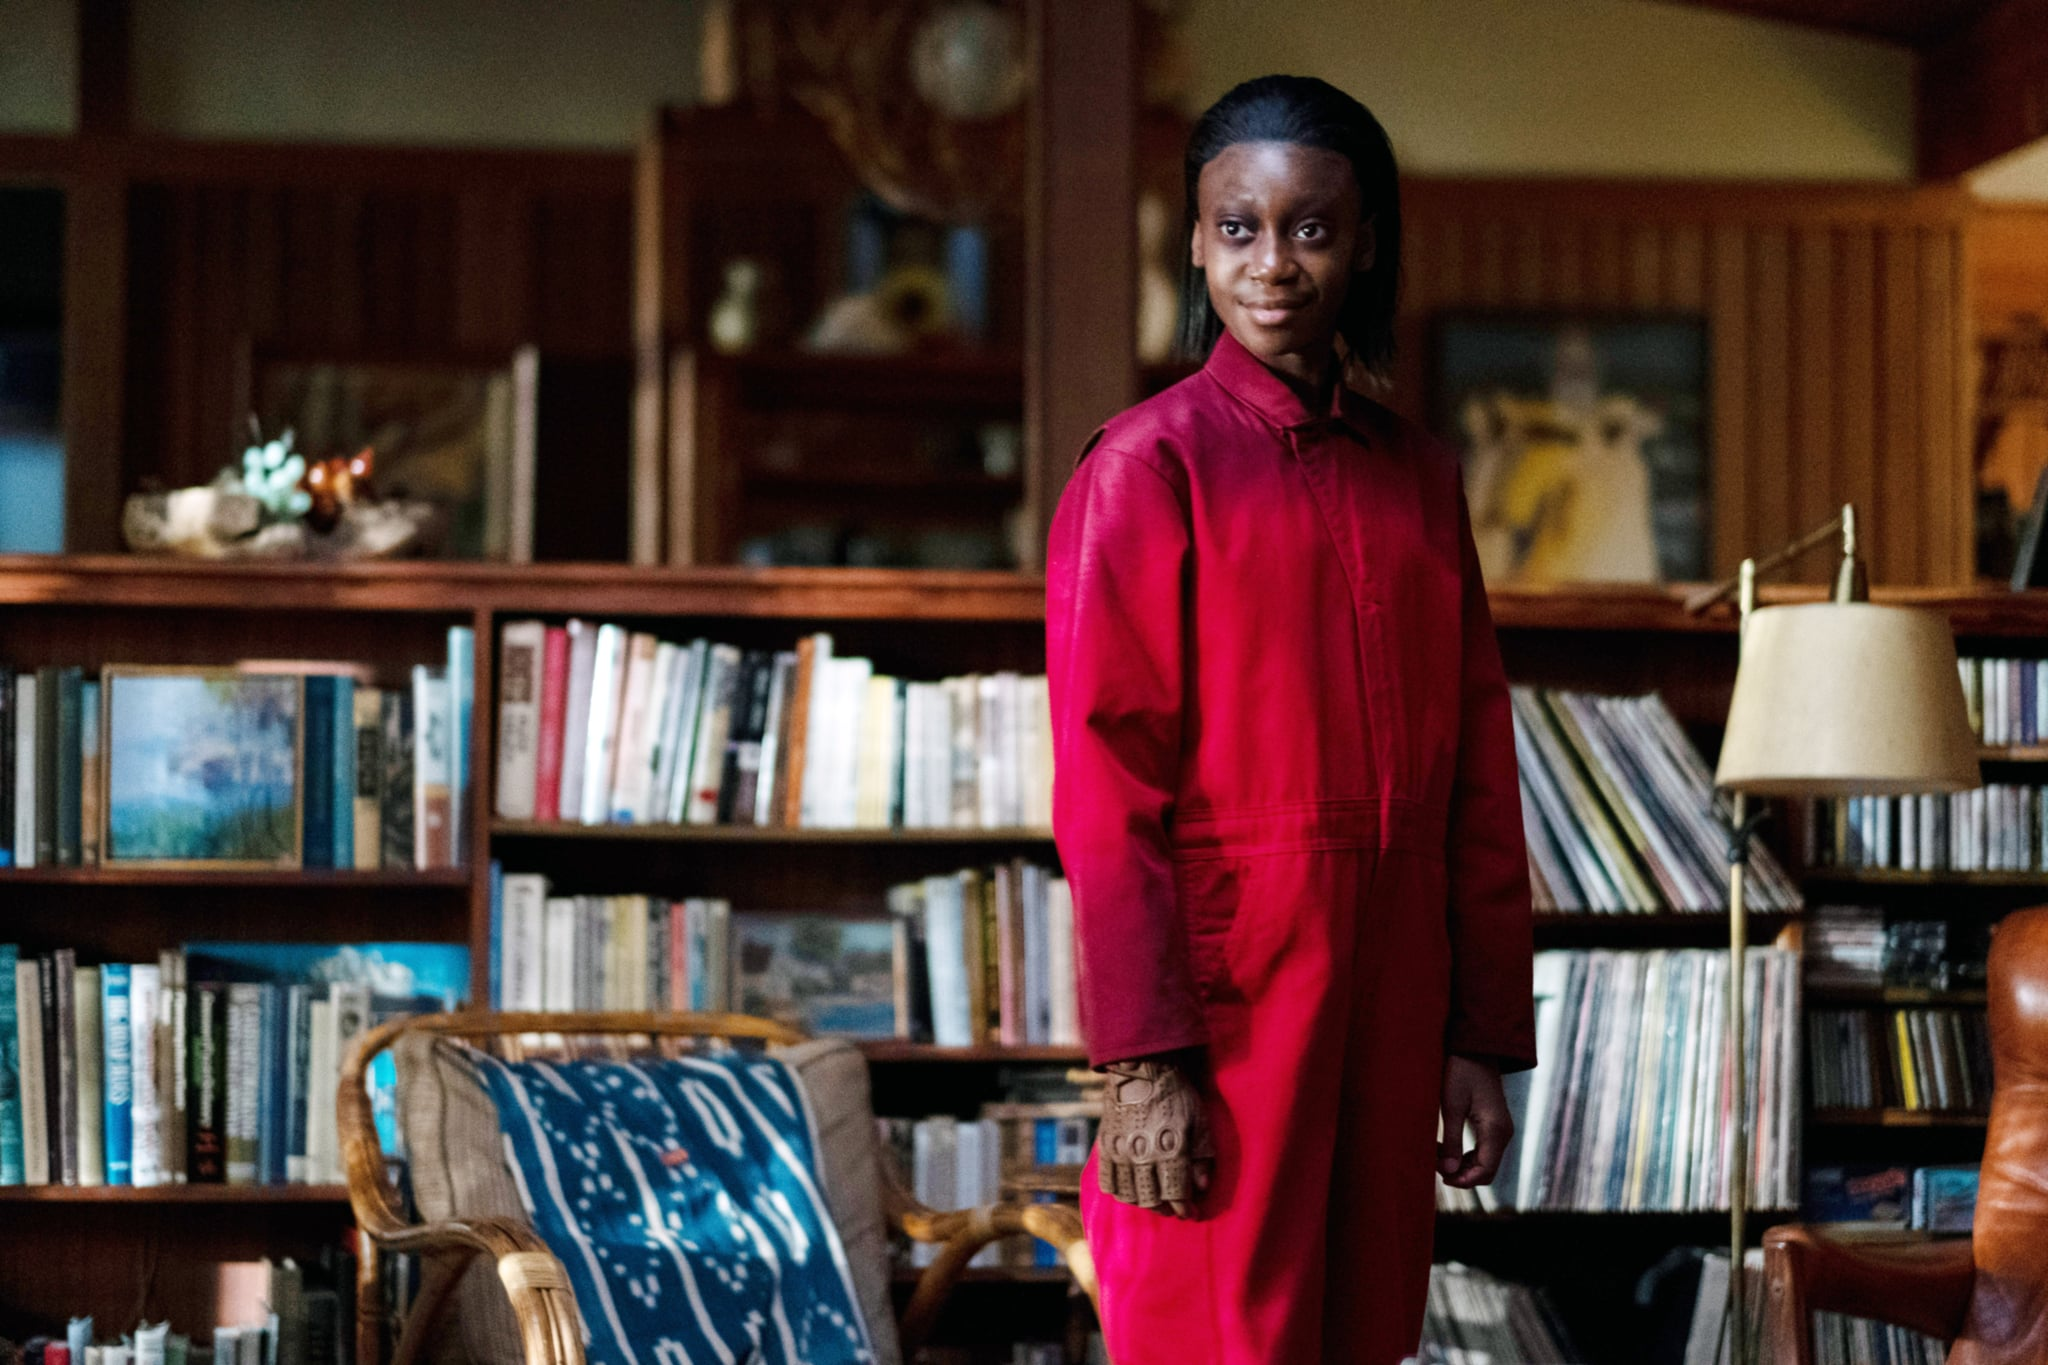 US, Shahadi Wright Joseph as doppelganger Umbrae, 2019. ph: Claudette Barius /  Universal / courtesy Everett Collection